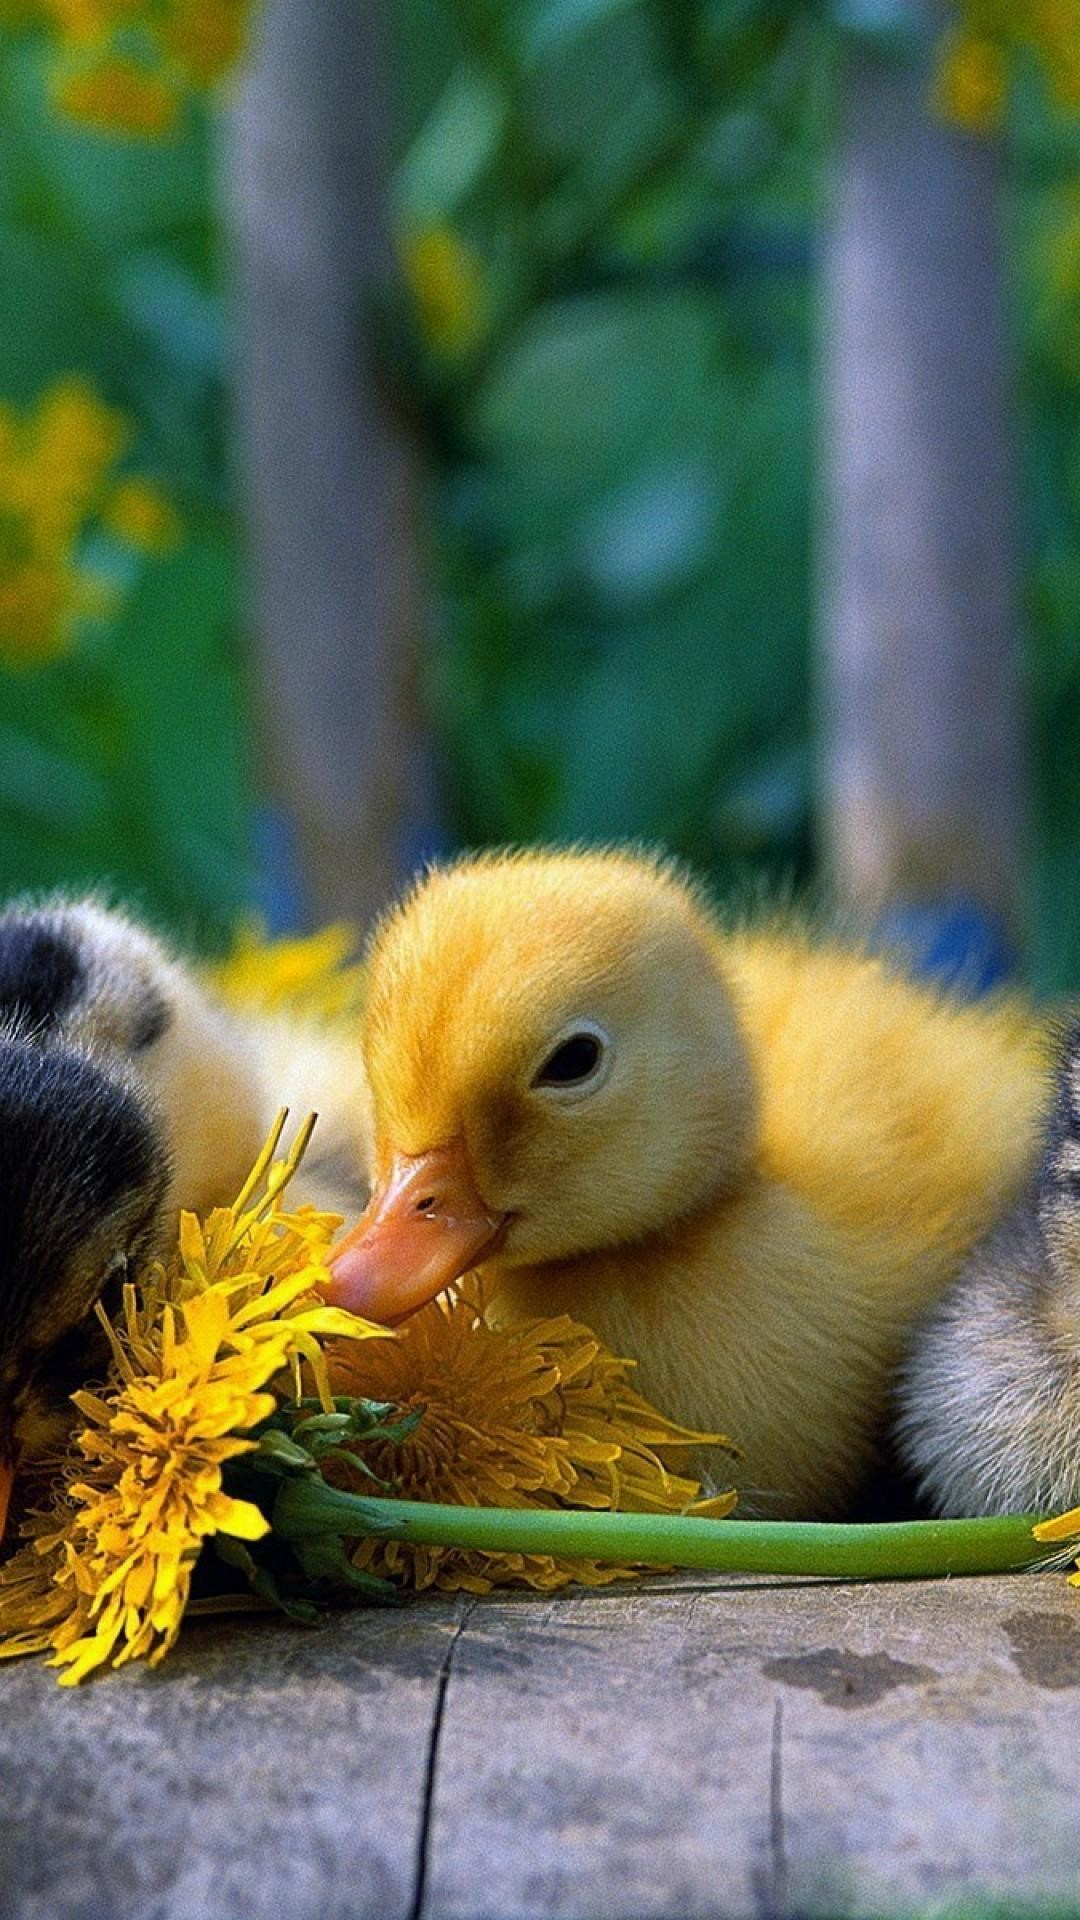 1080x1920 Android wallpaper free download Birds   baby_birds_duckling_ducks_nature_yellow_flowers